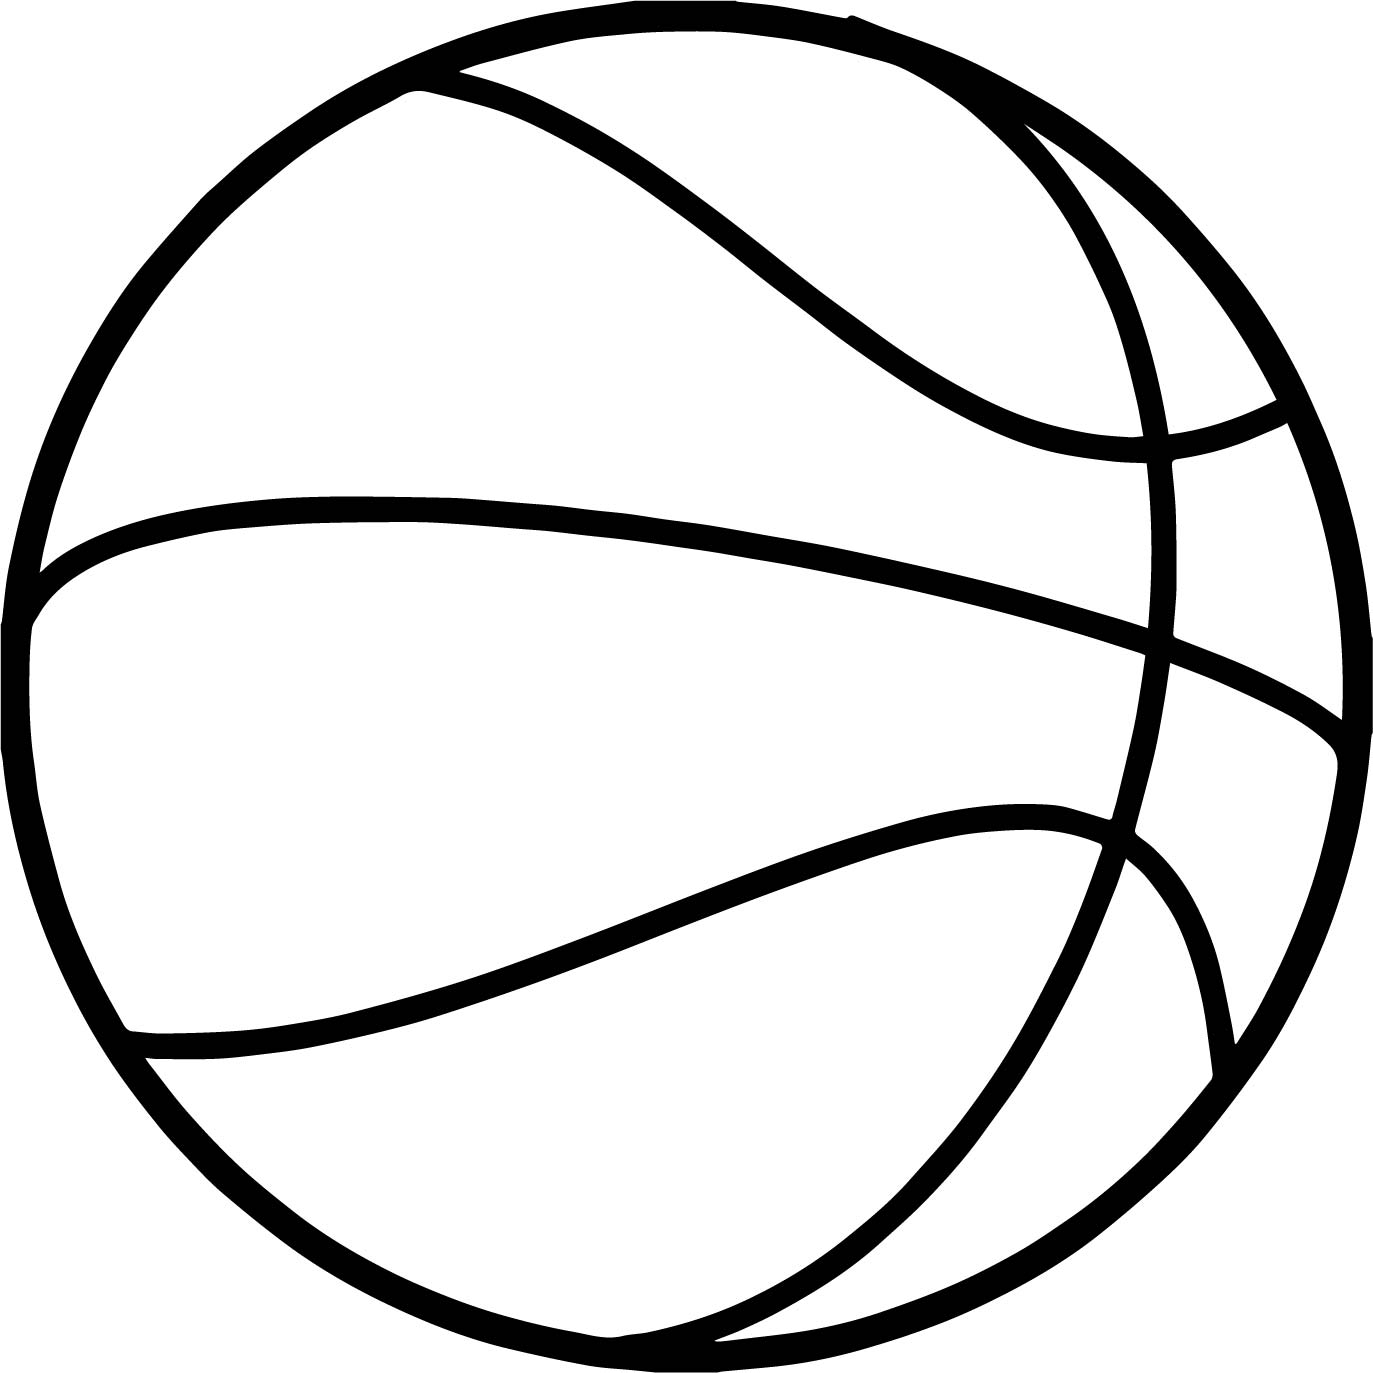 1373x1373 Wonderful Coloring Pages Of Soccer Balls Top Gallery Ideas Ball